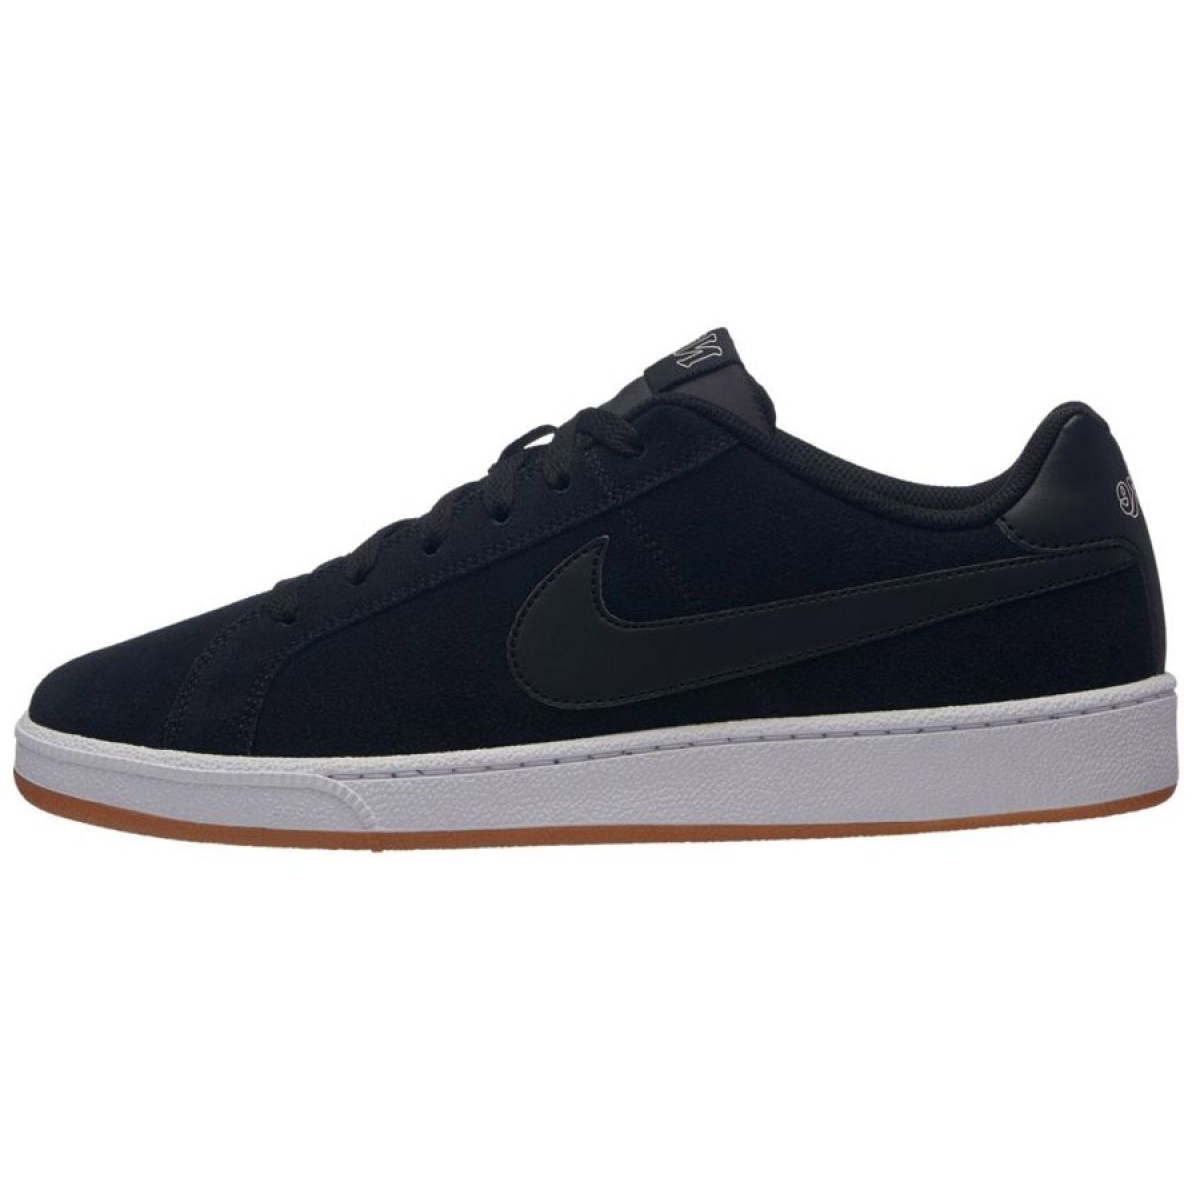 Nike Court Royale Suede M 819802-013